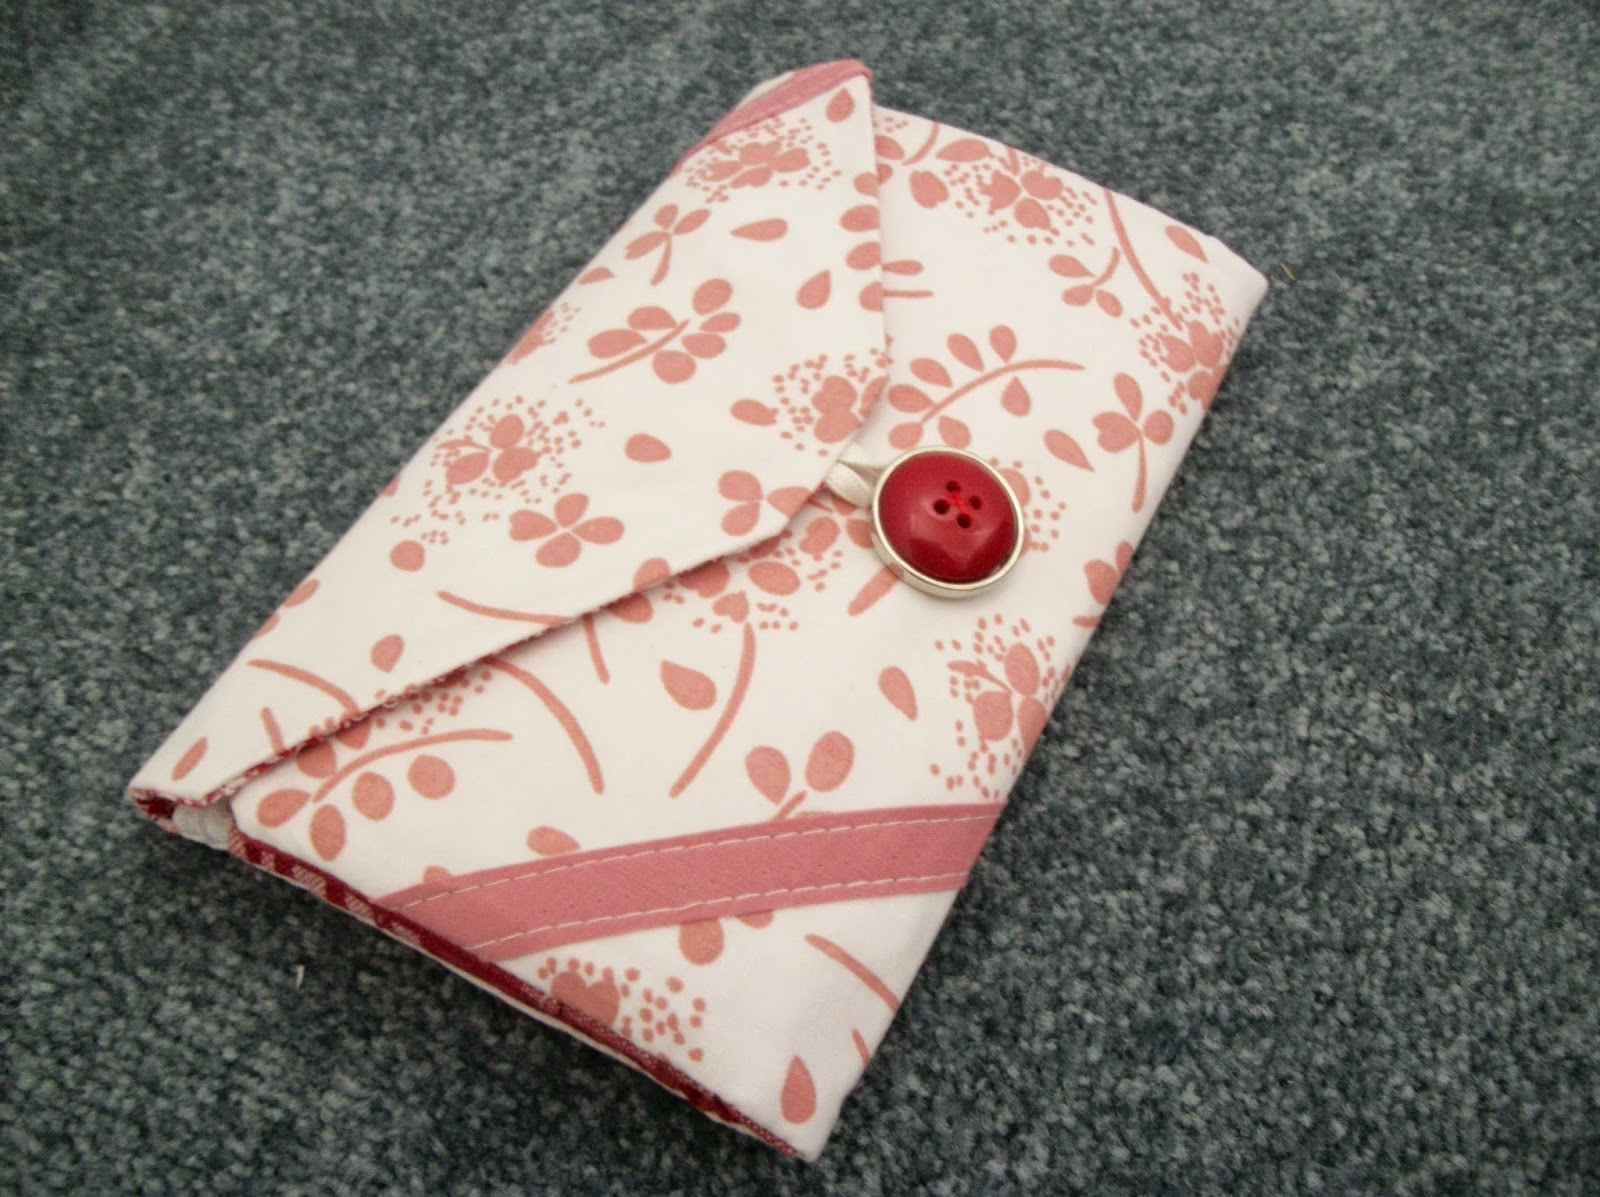 All Wrapped Up inspired wallet crafted by eSheep Designs